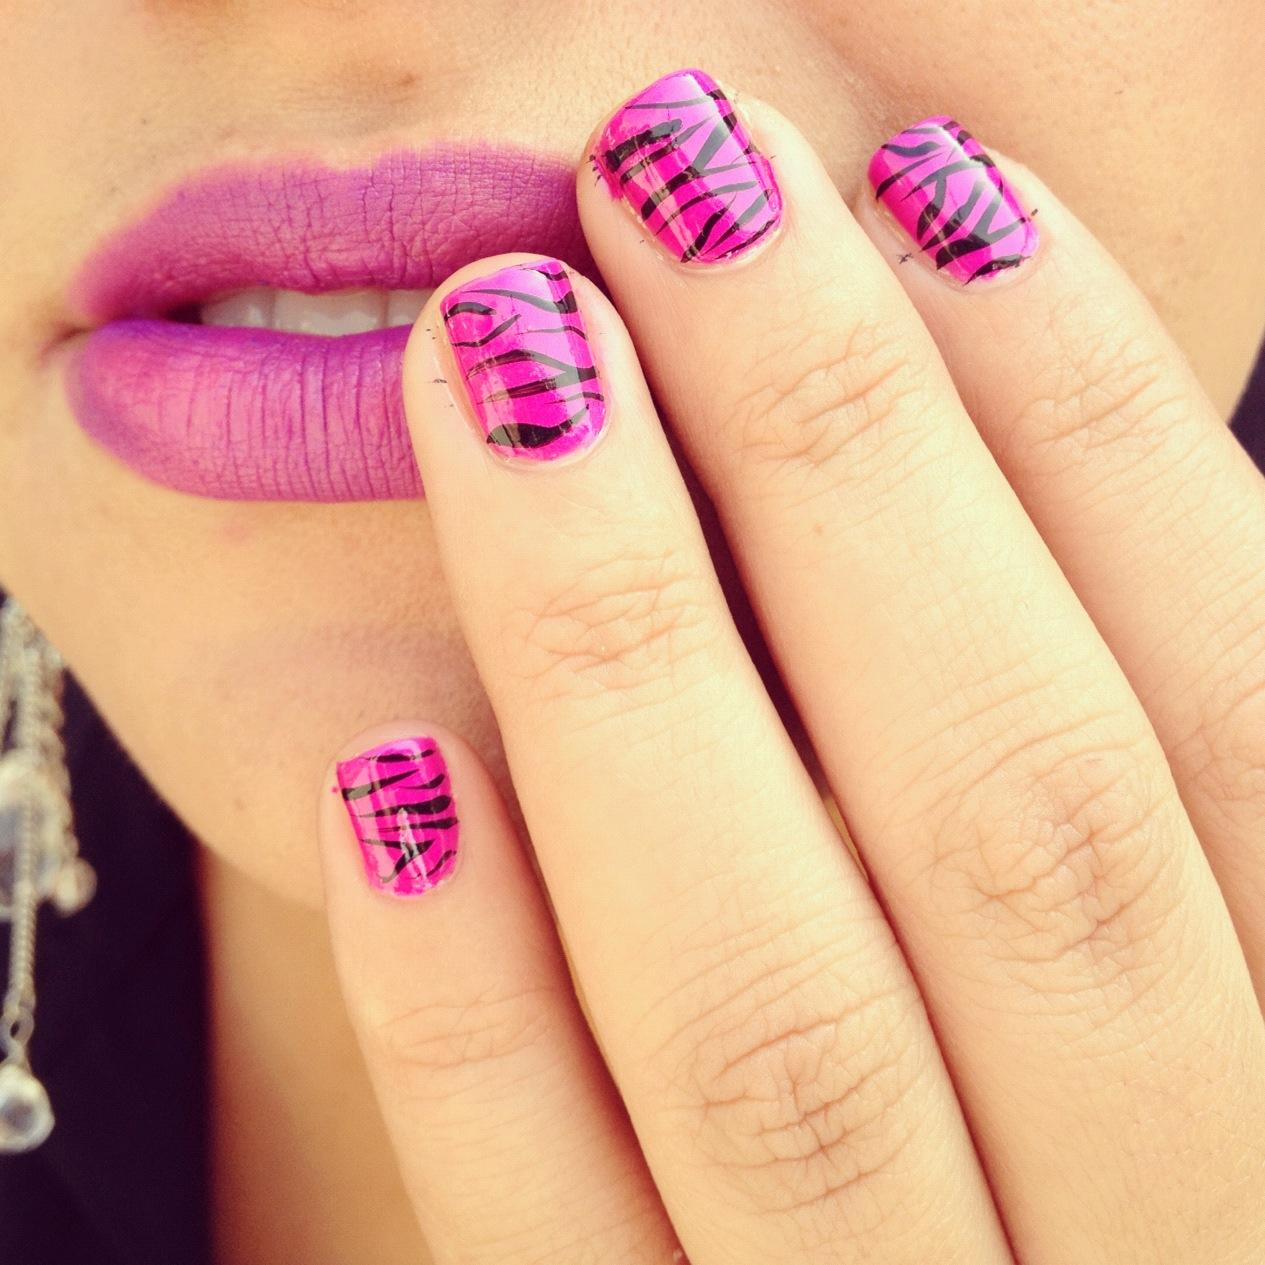 Easy Nail Designs Pink And Black Best Image Webproxp